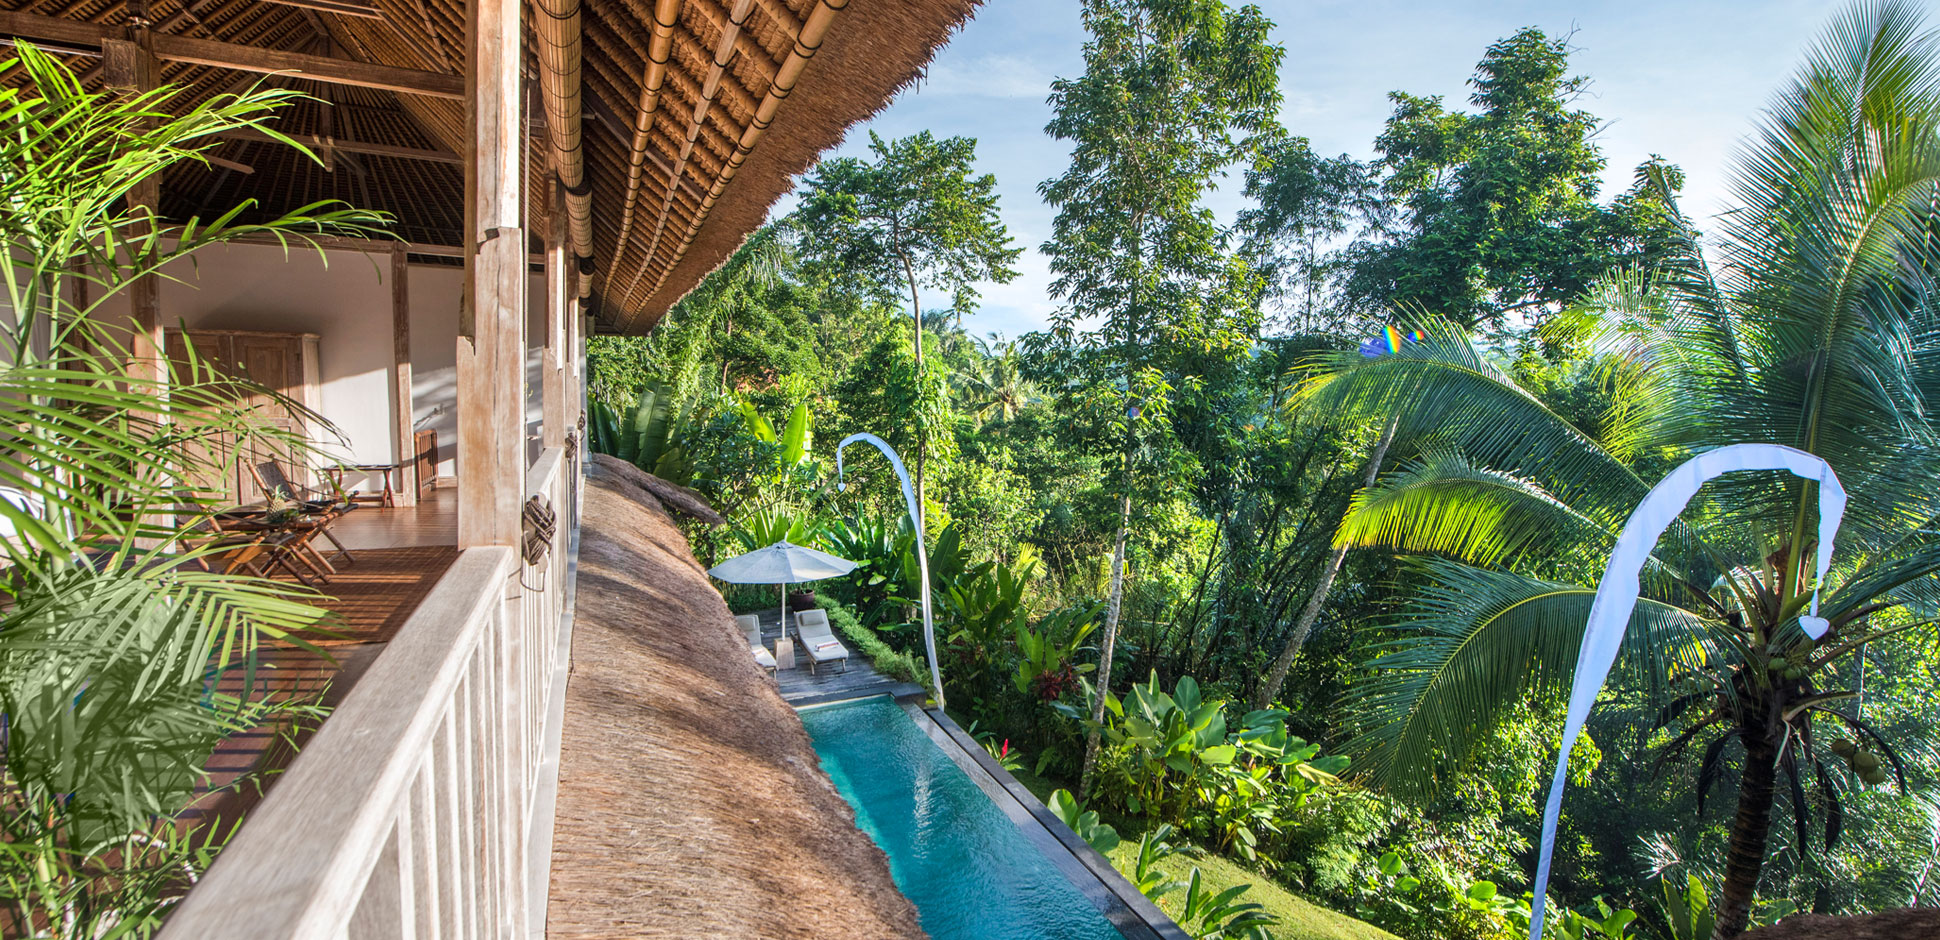 ubud private villa rental